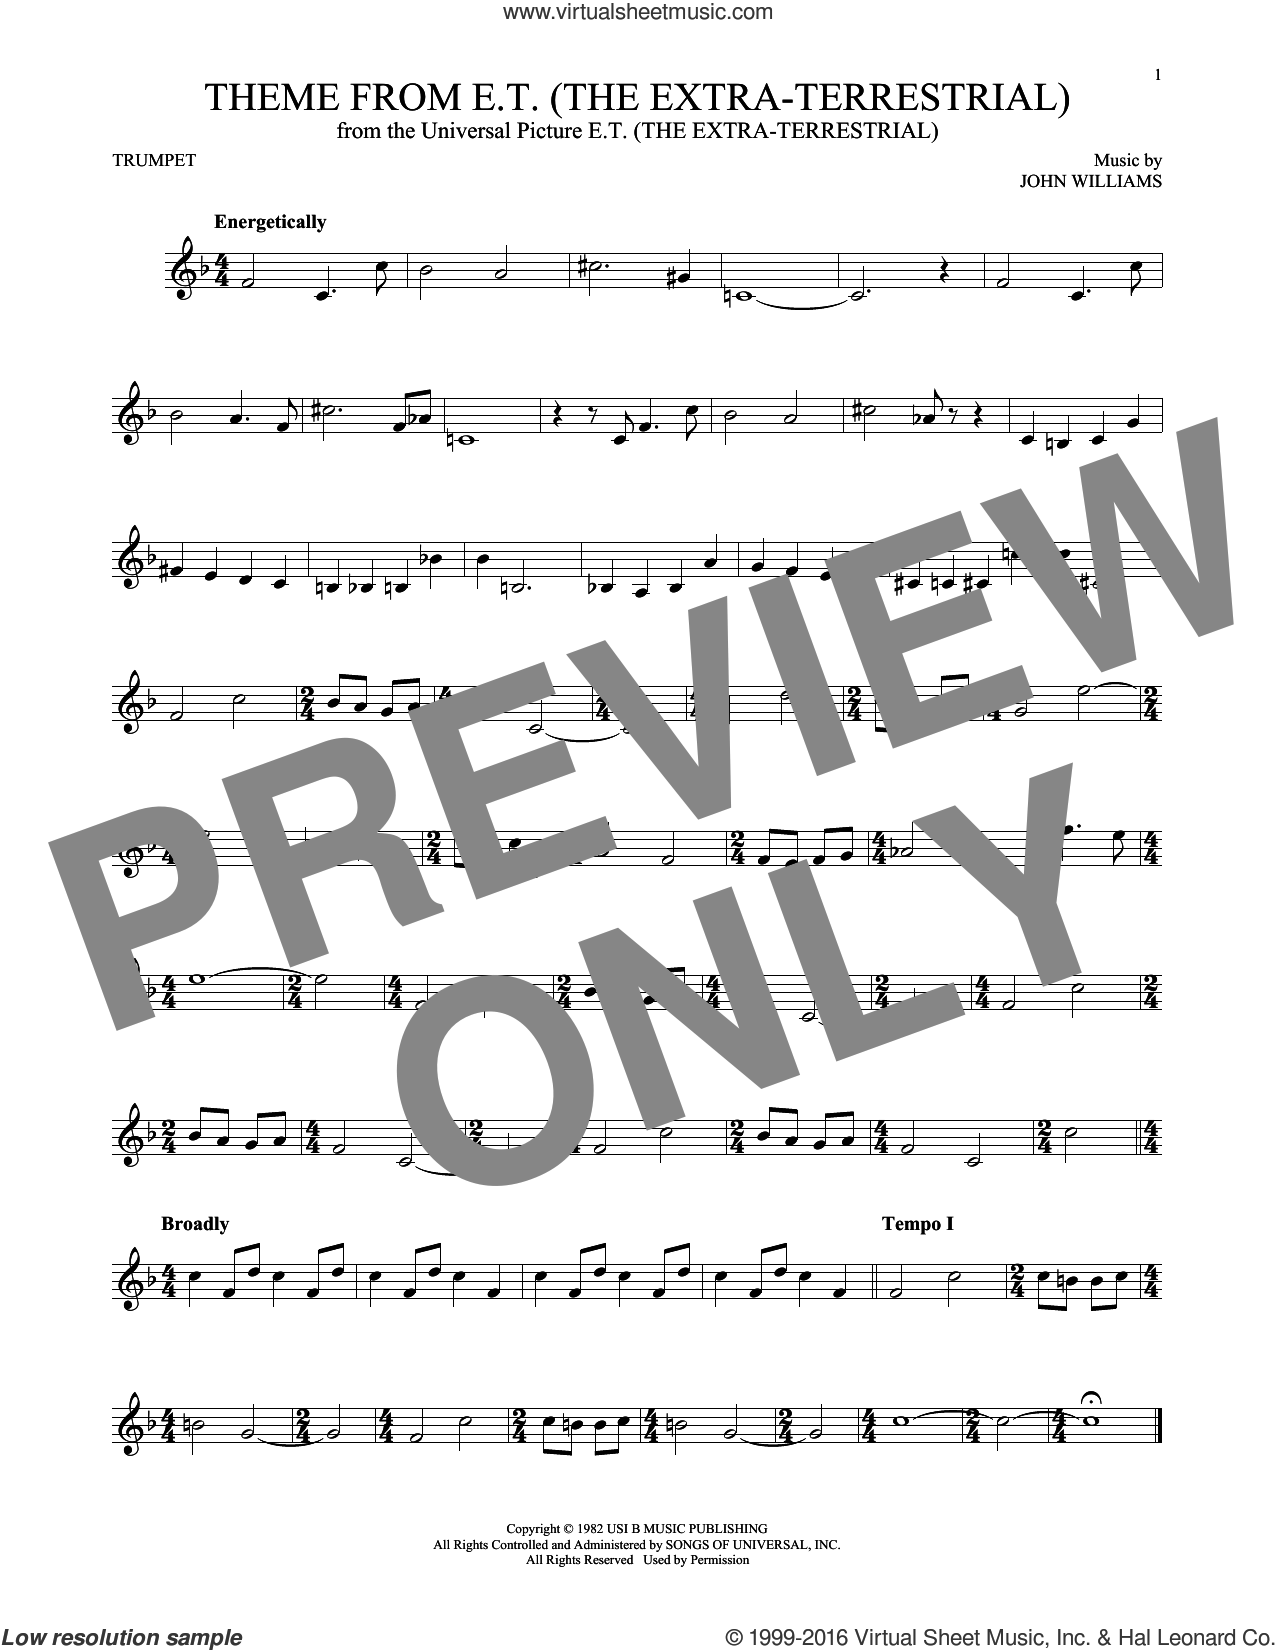 Theme From E.T. (The Extra-Terrestrial) sheet music for trumpet solo by John Williams, intermediate. Score Image Preview.